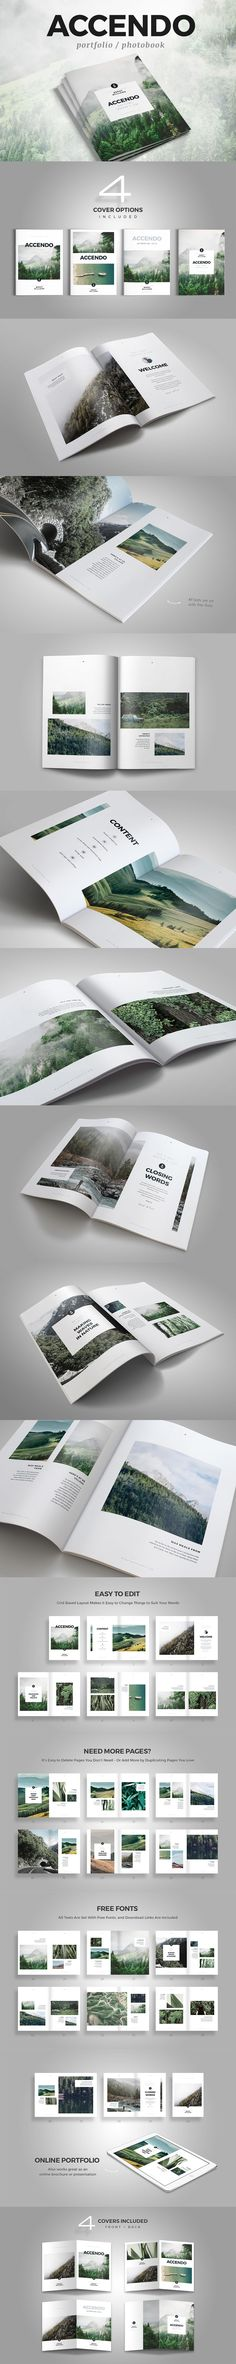 ACCENDO - Portfolio / Photobook / Brochure Template InDesign INDD - 40 Pages, A4 and US Letter Size